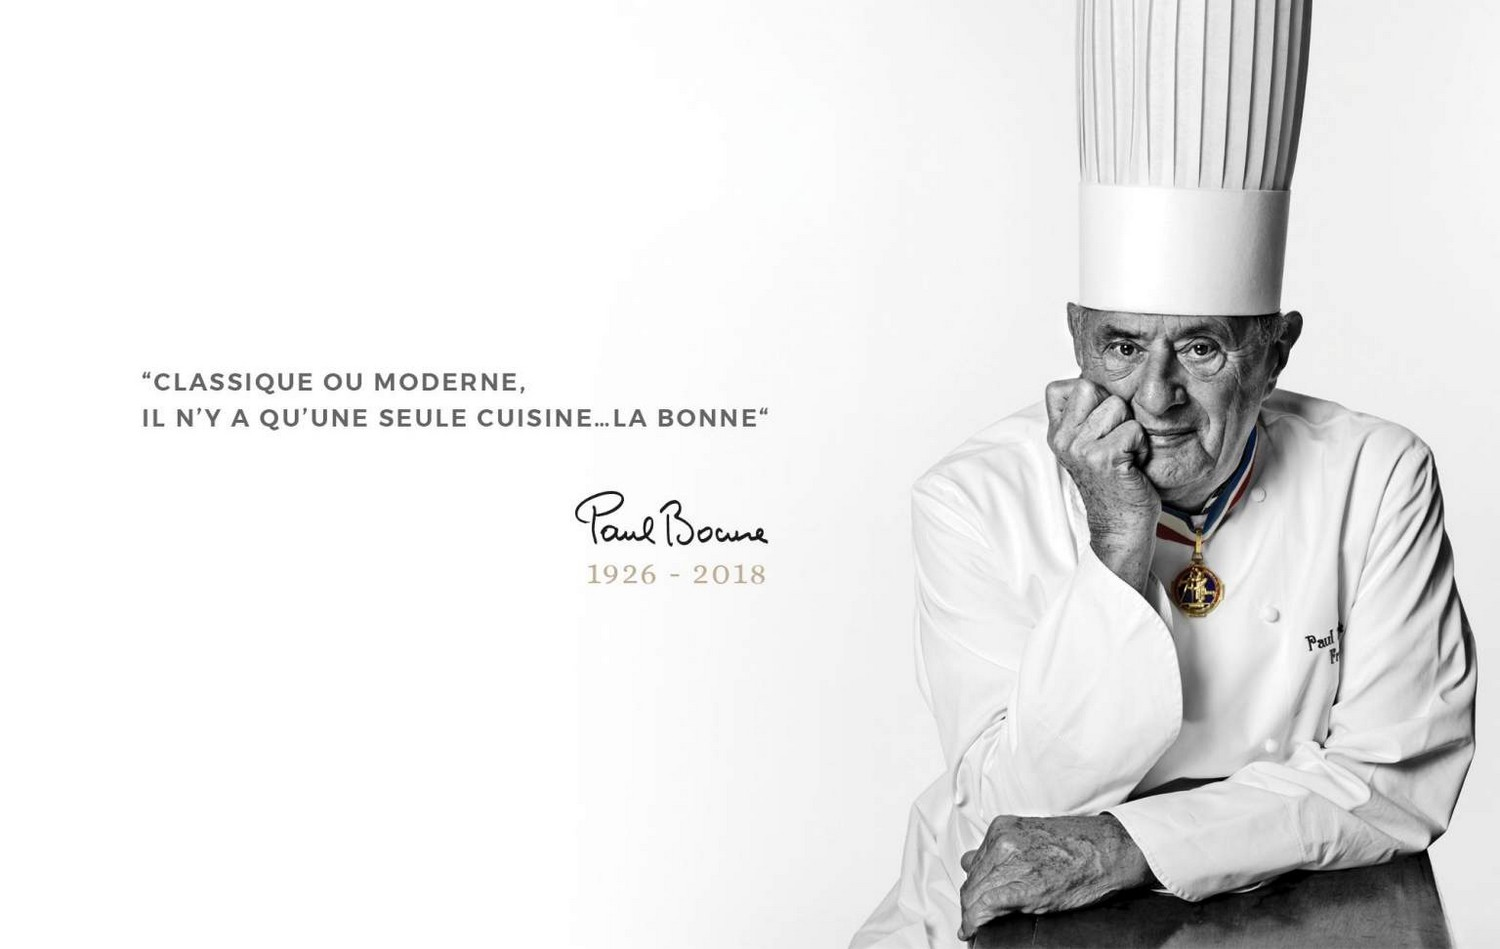 la home du site Paul Bocuse